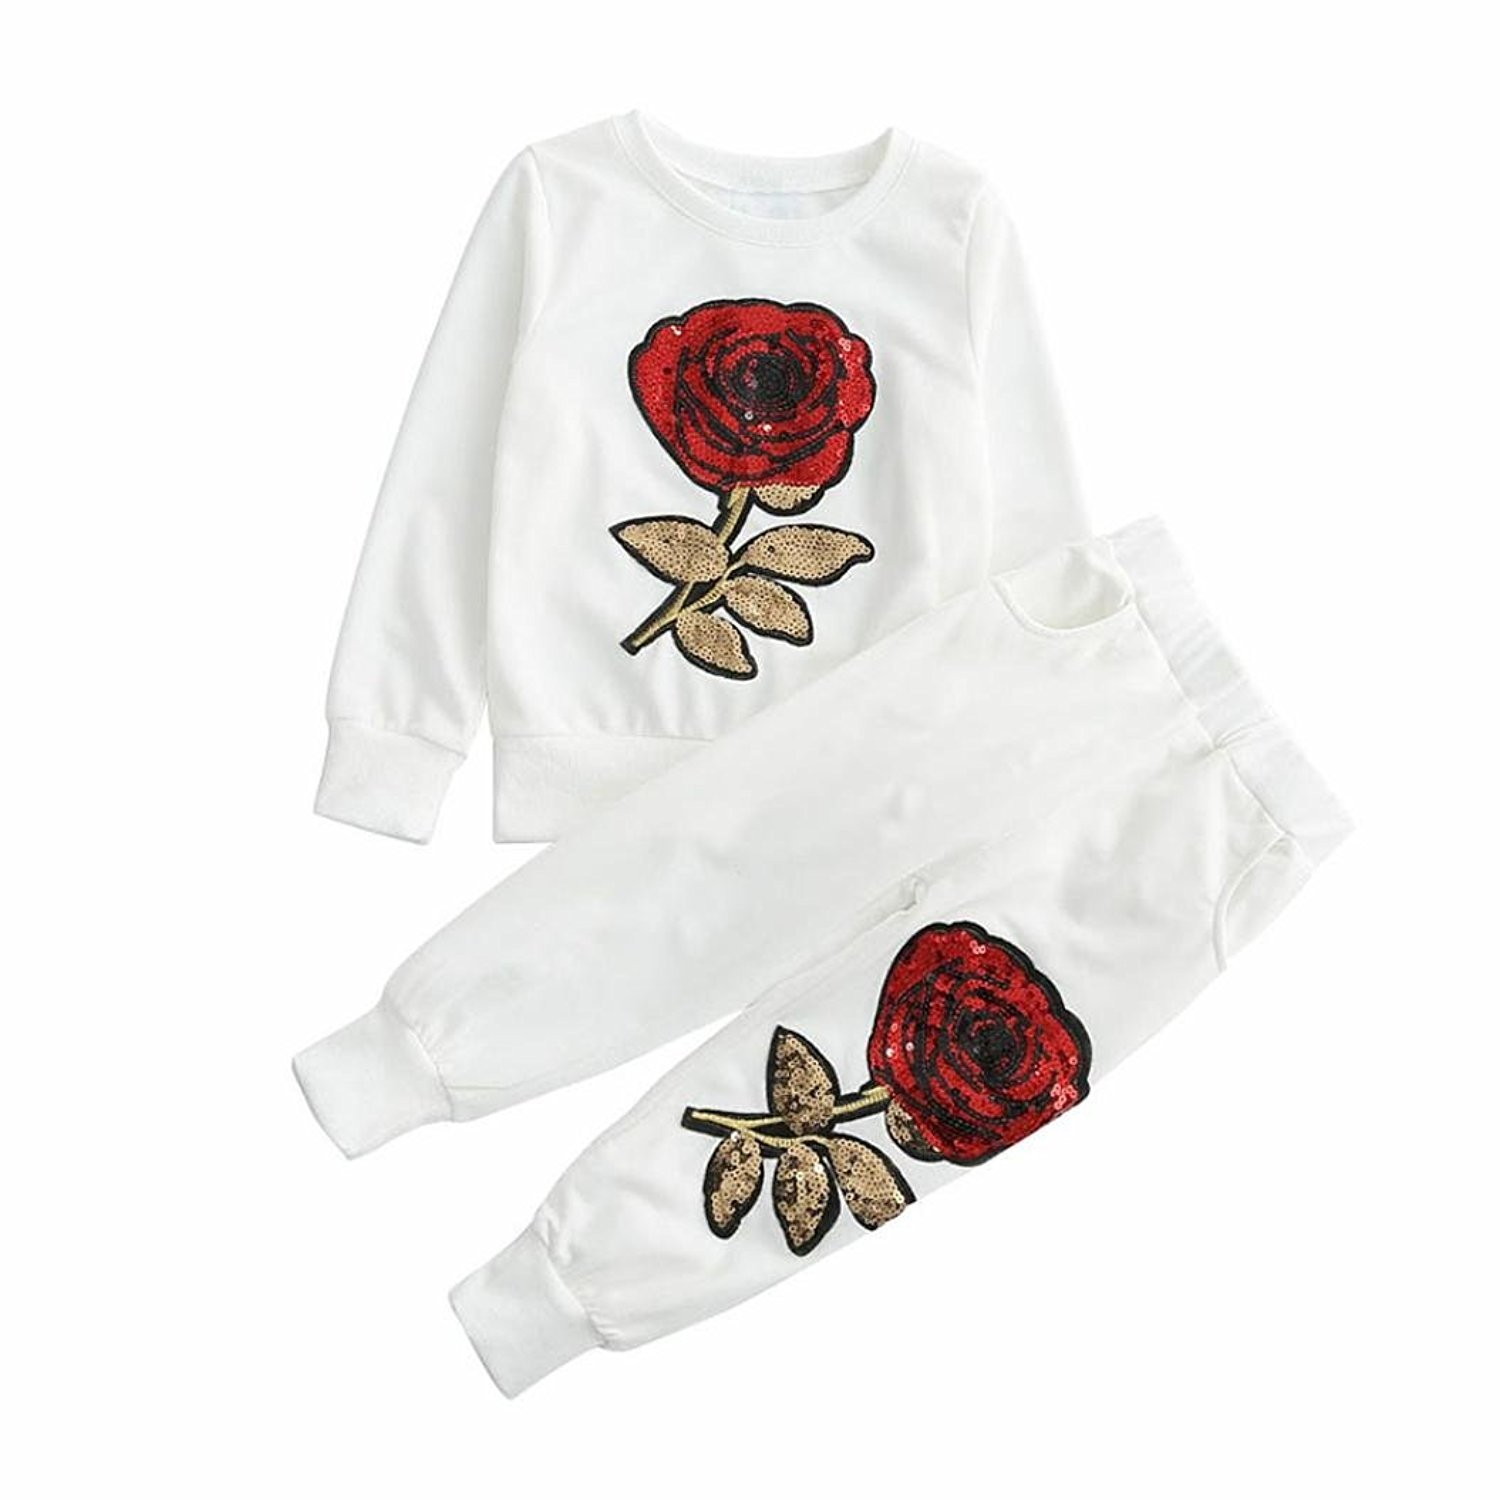 Fulltime(TM) Kids Girls Outfit Clothes Floral Embroidered Sequin T-shirt + Long Pants Sets F-6346